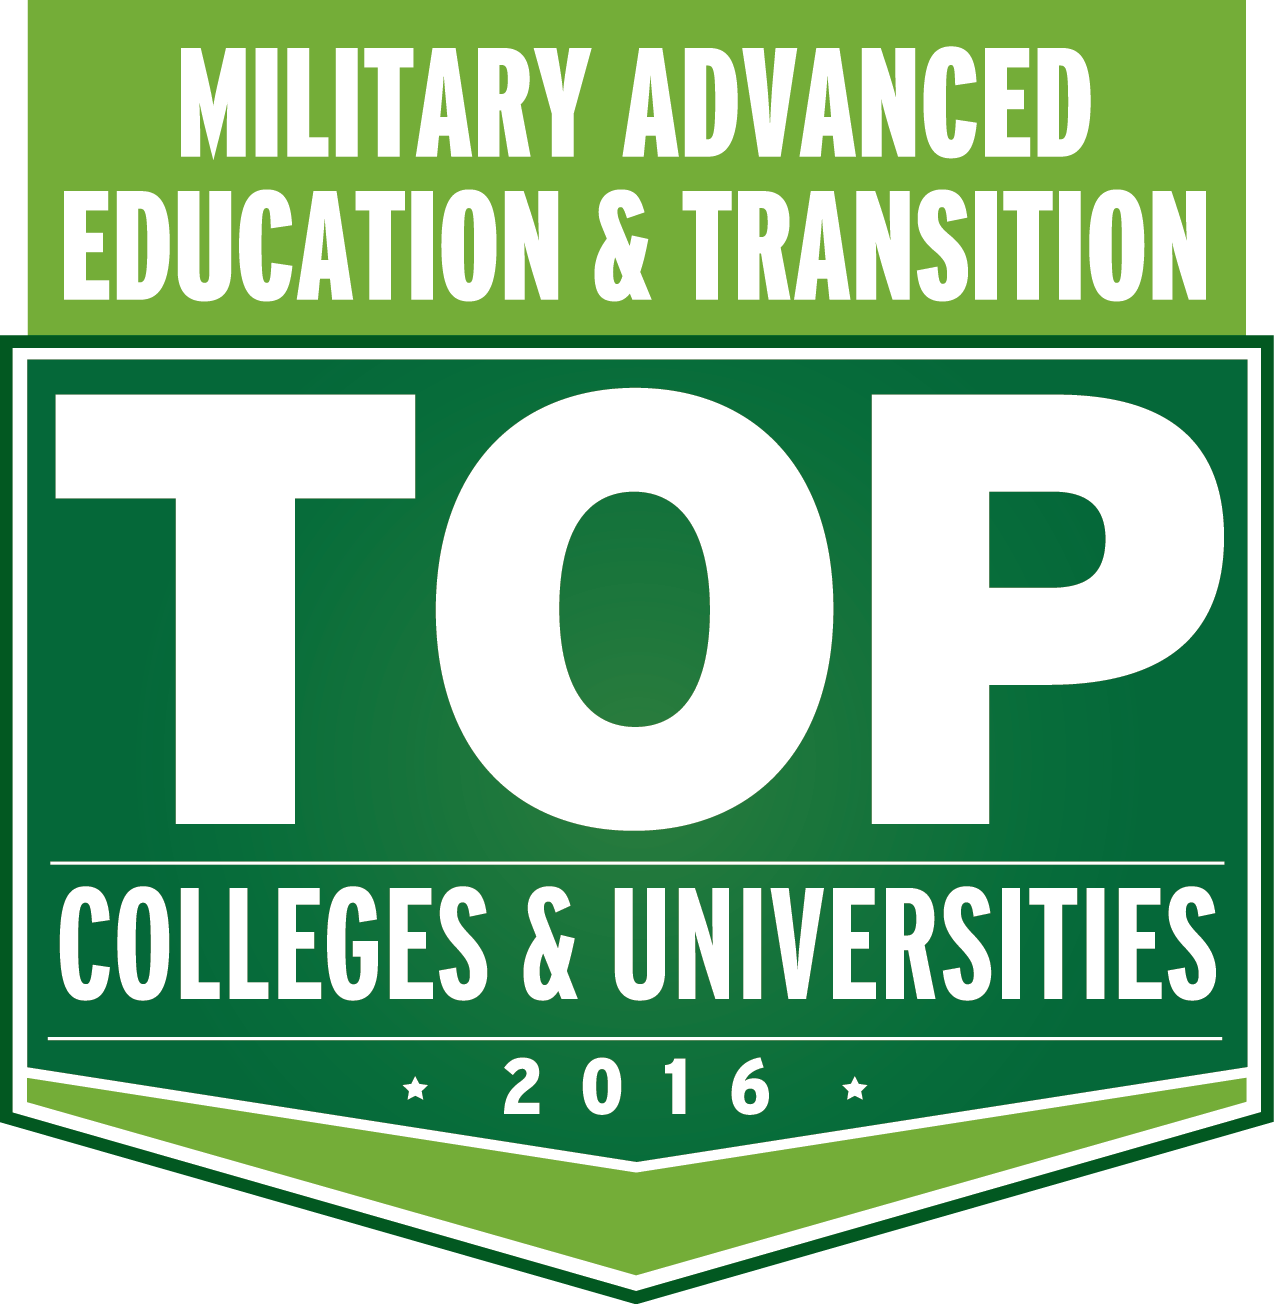 Military Advanced Education & Transition Top Colleges & Universities 2016